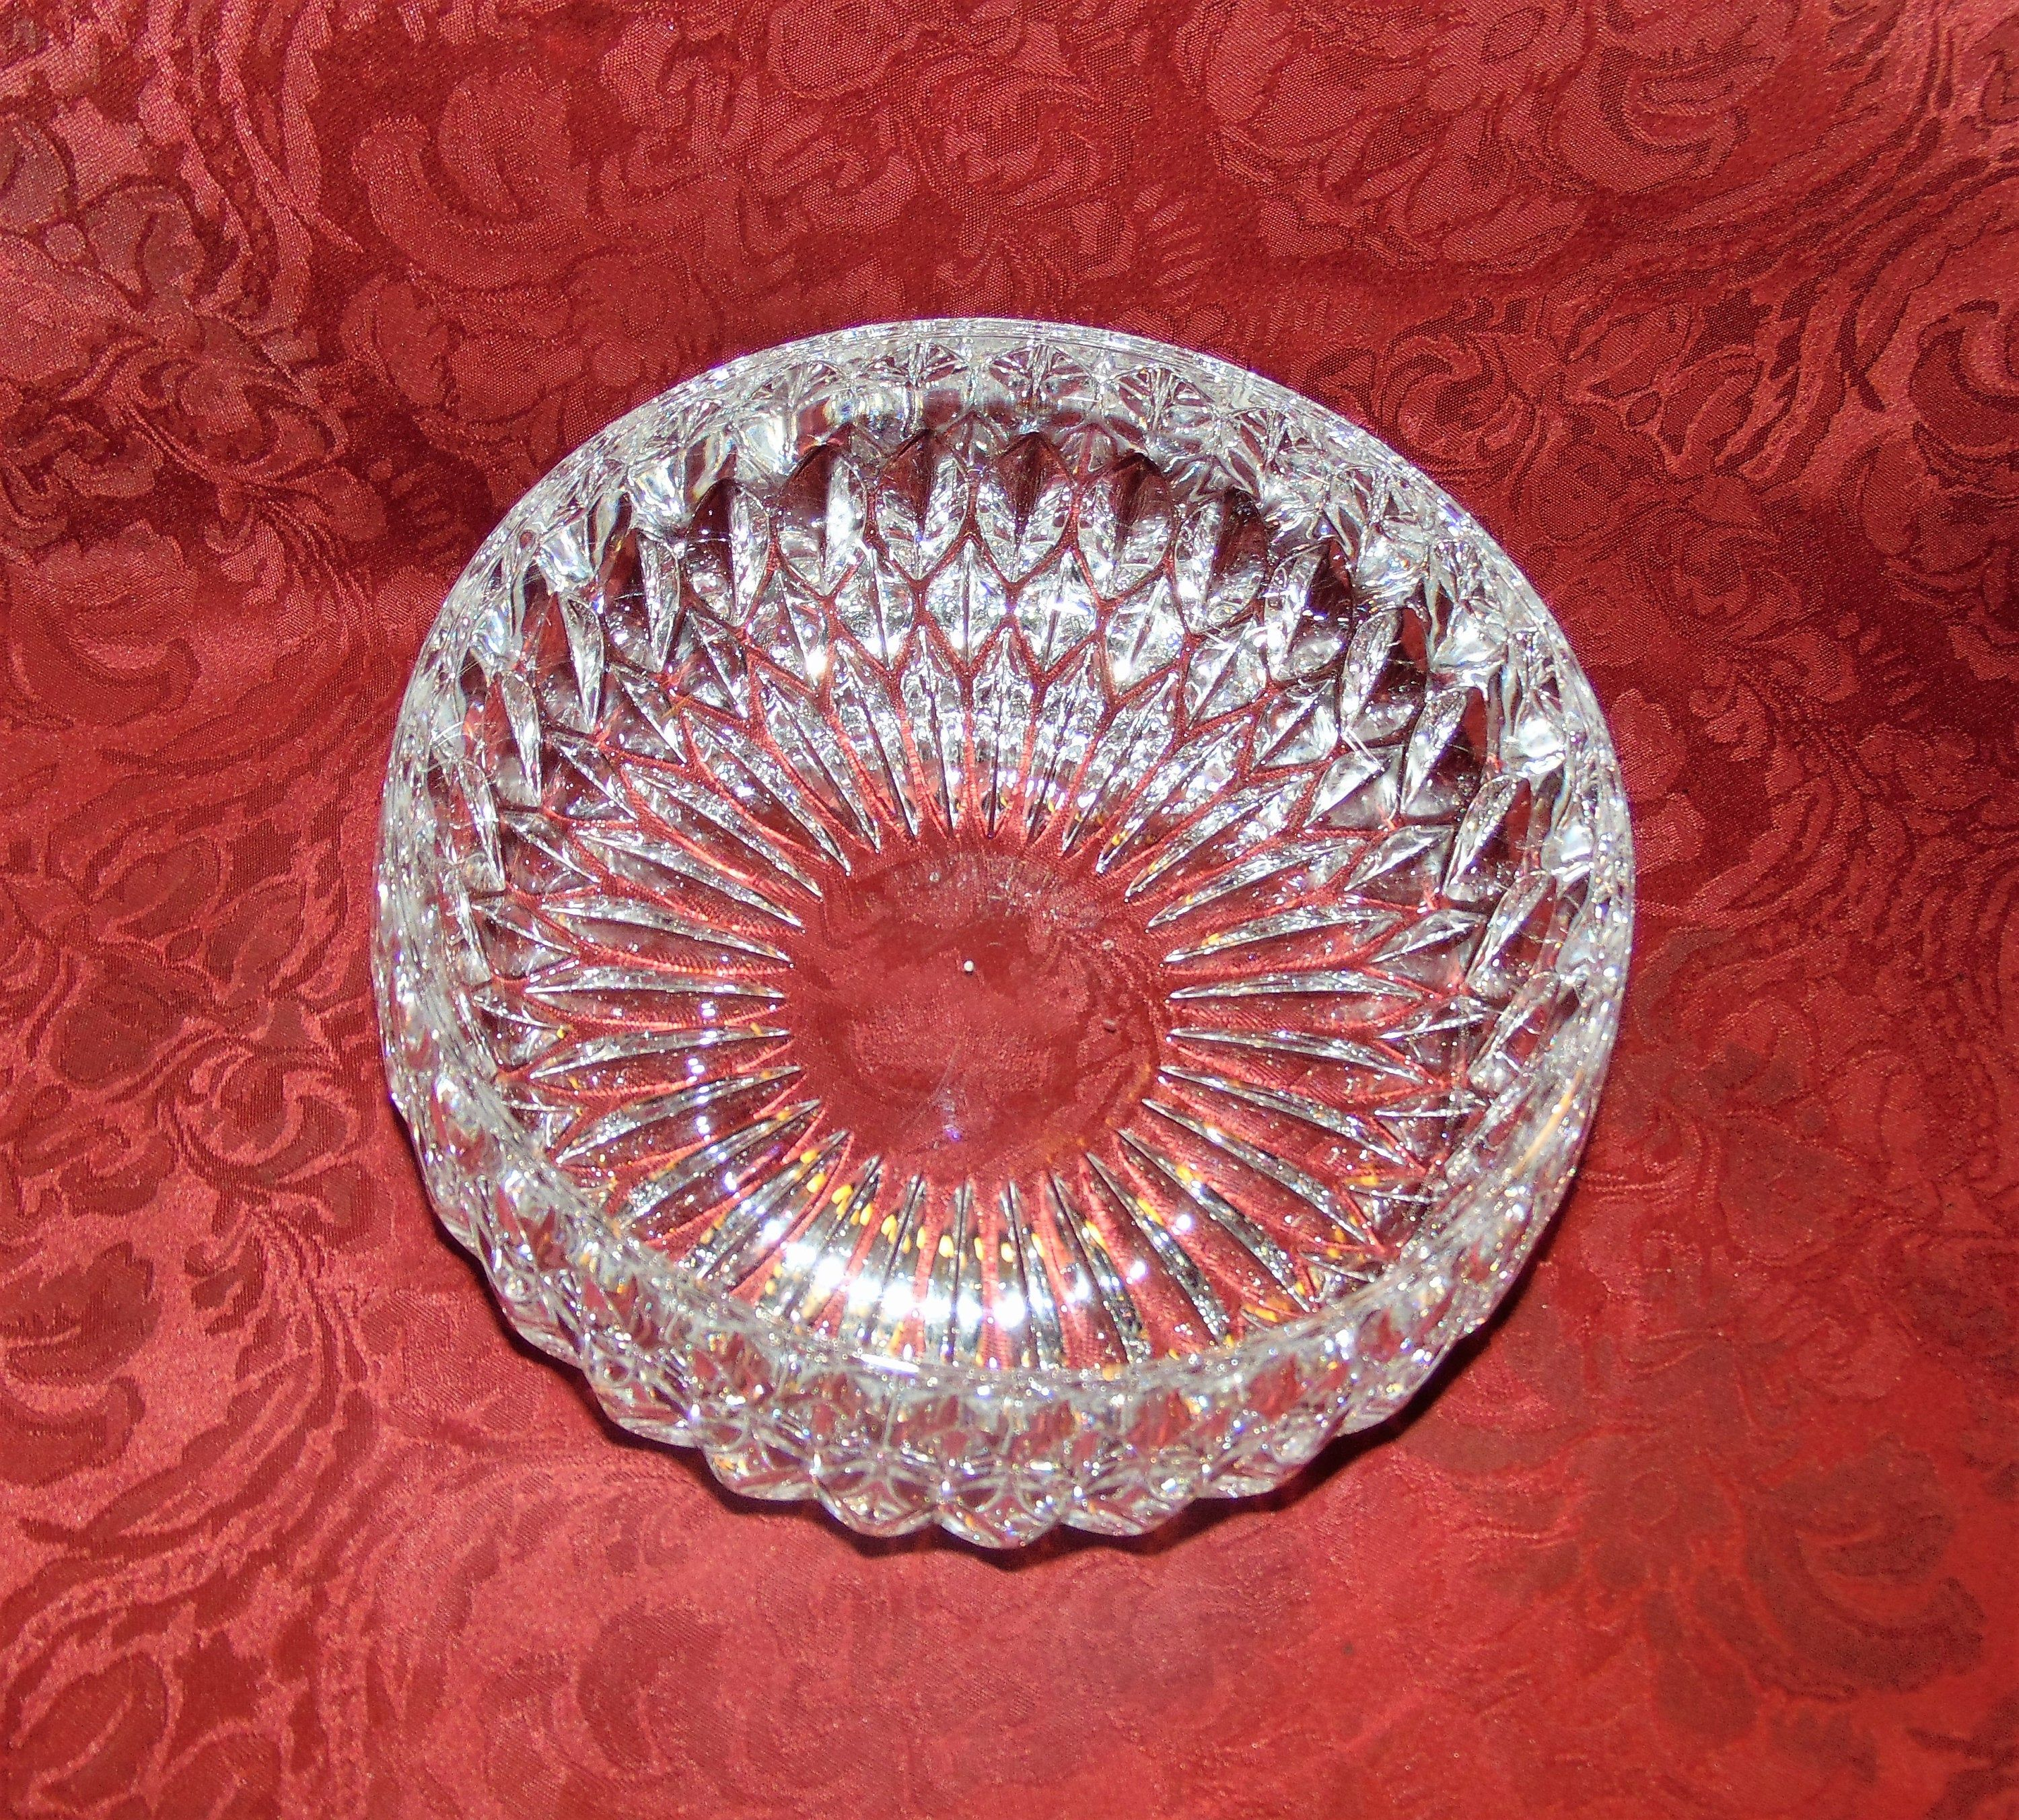 Waterford Large Crystal Serving Bowl From Ireland Unsigned Etsy In 2020 Large Crystals Crystal Bowls Bowl